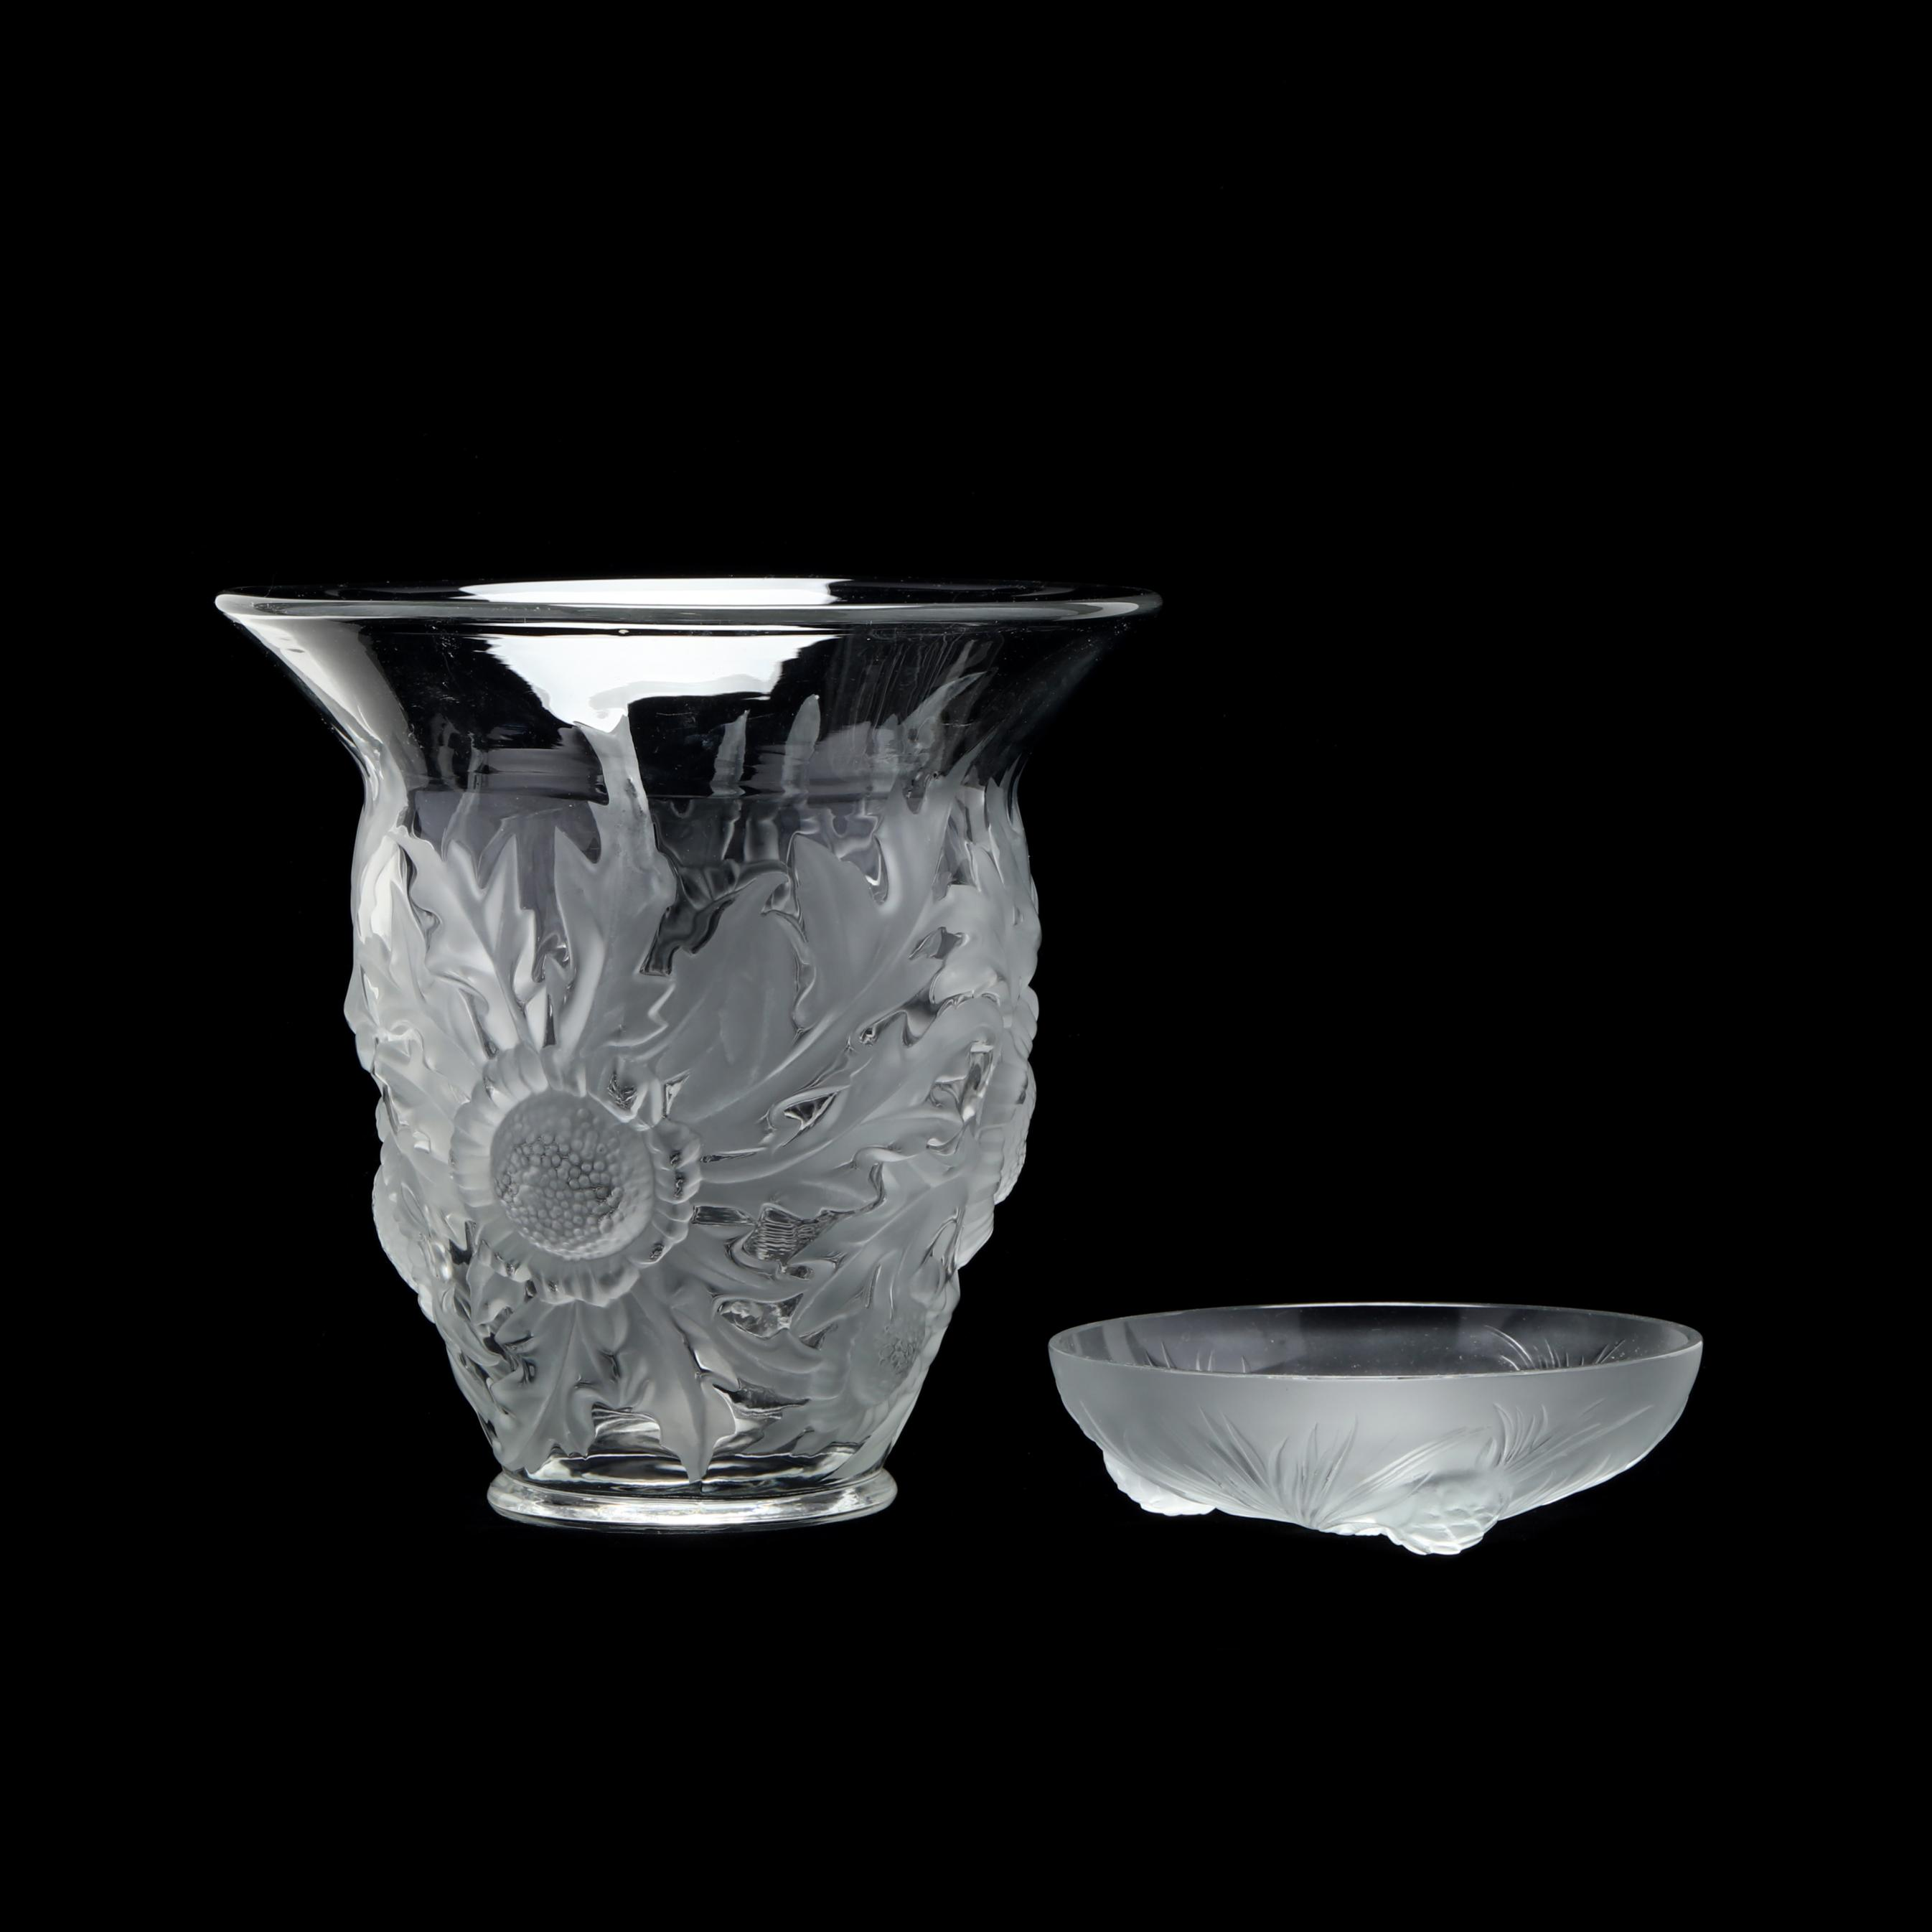 verlys-two-pieces-of-art-glass